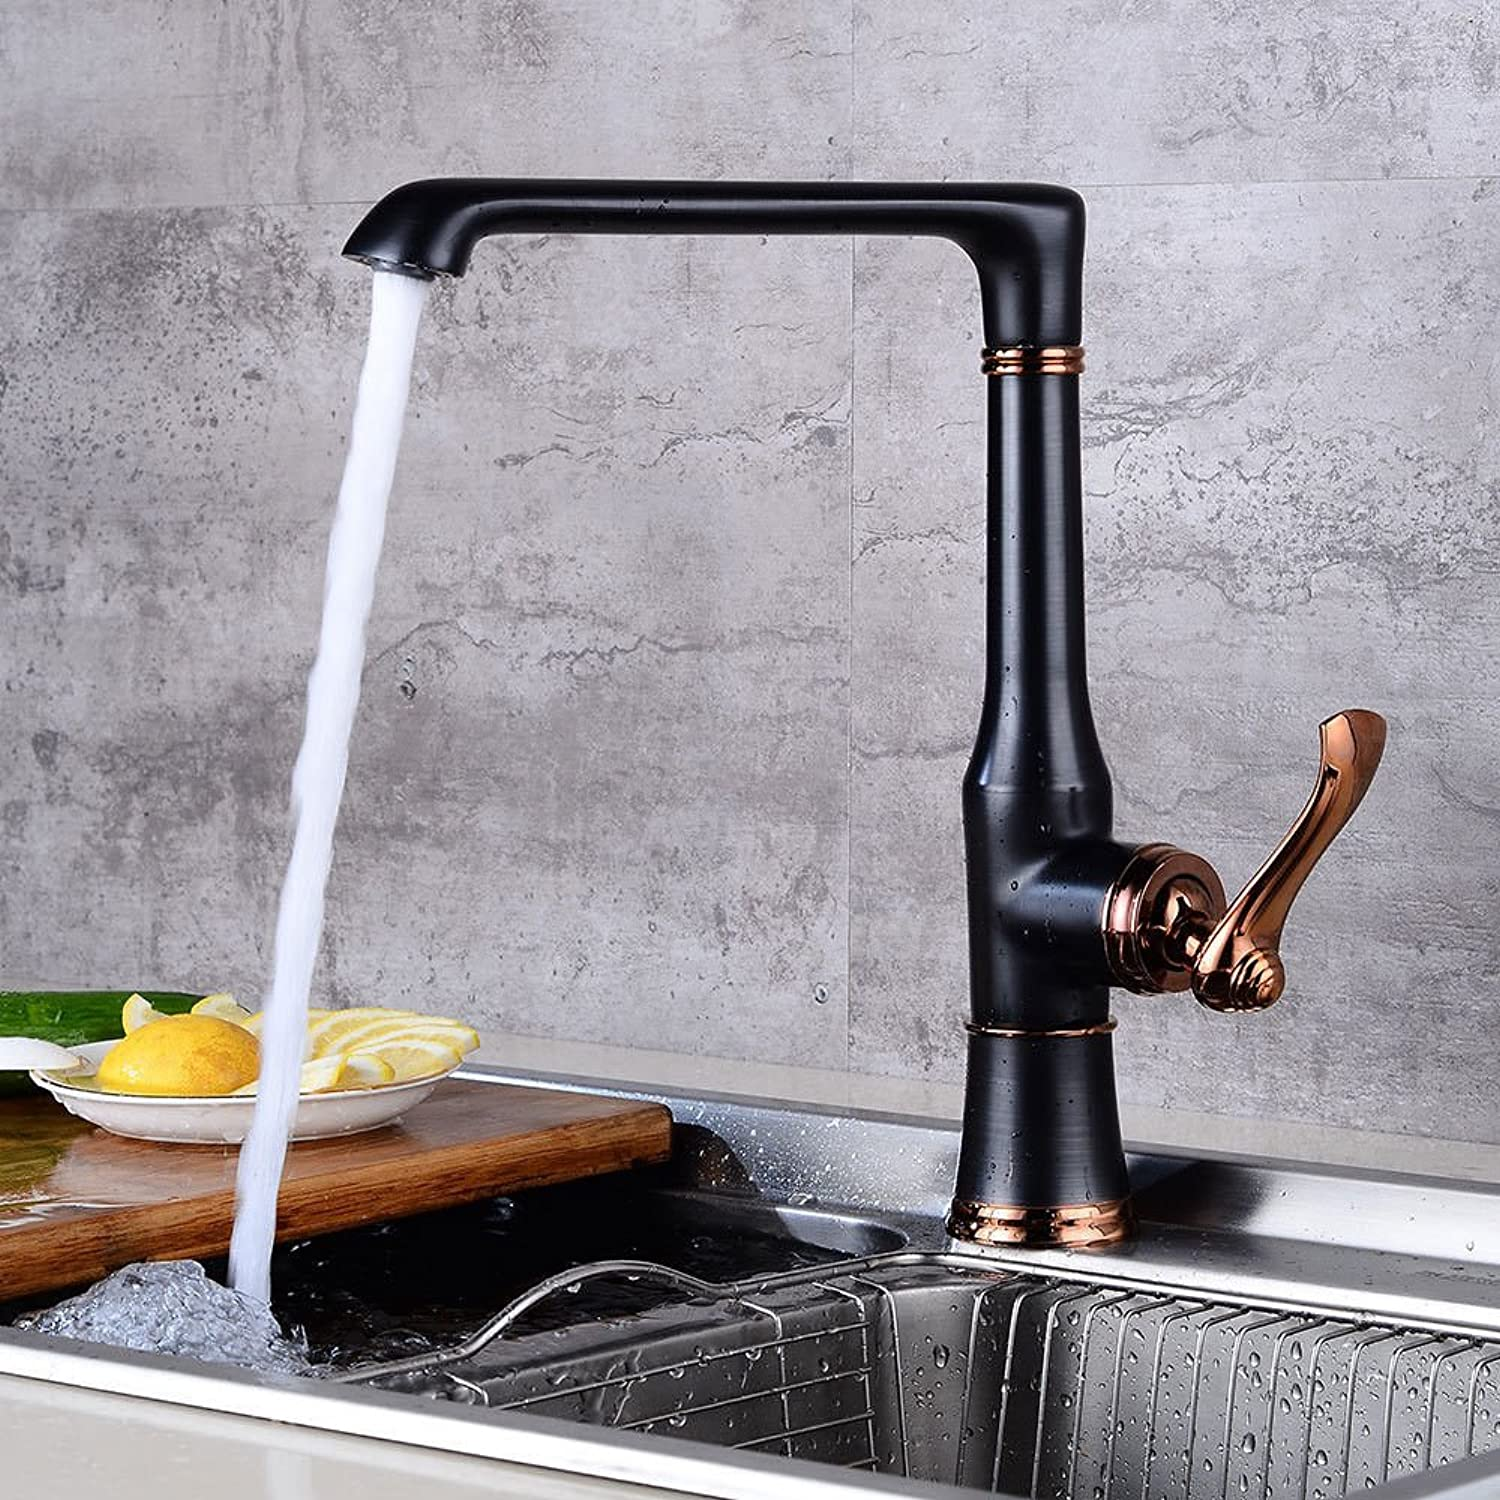 ETERNAL QUALITY Bathroom Sink Basin Tap Brass Mixer Tap Washroom Mixer Faucet Antique kitchen faucet to wash dishes pool water faucet turn cold and hot water mixing valve